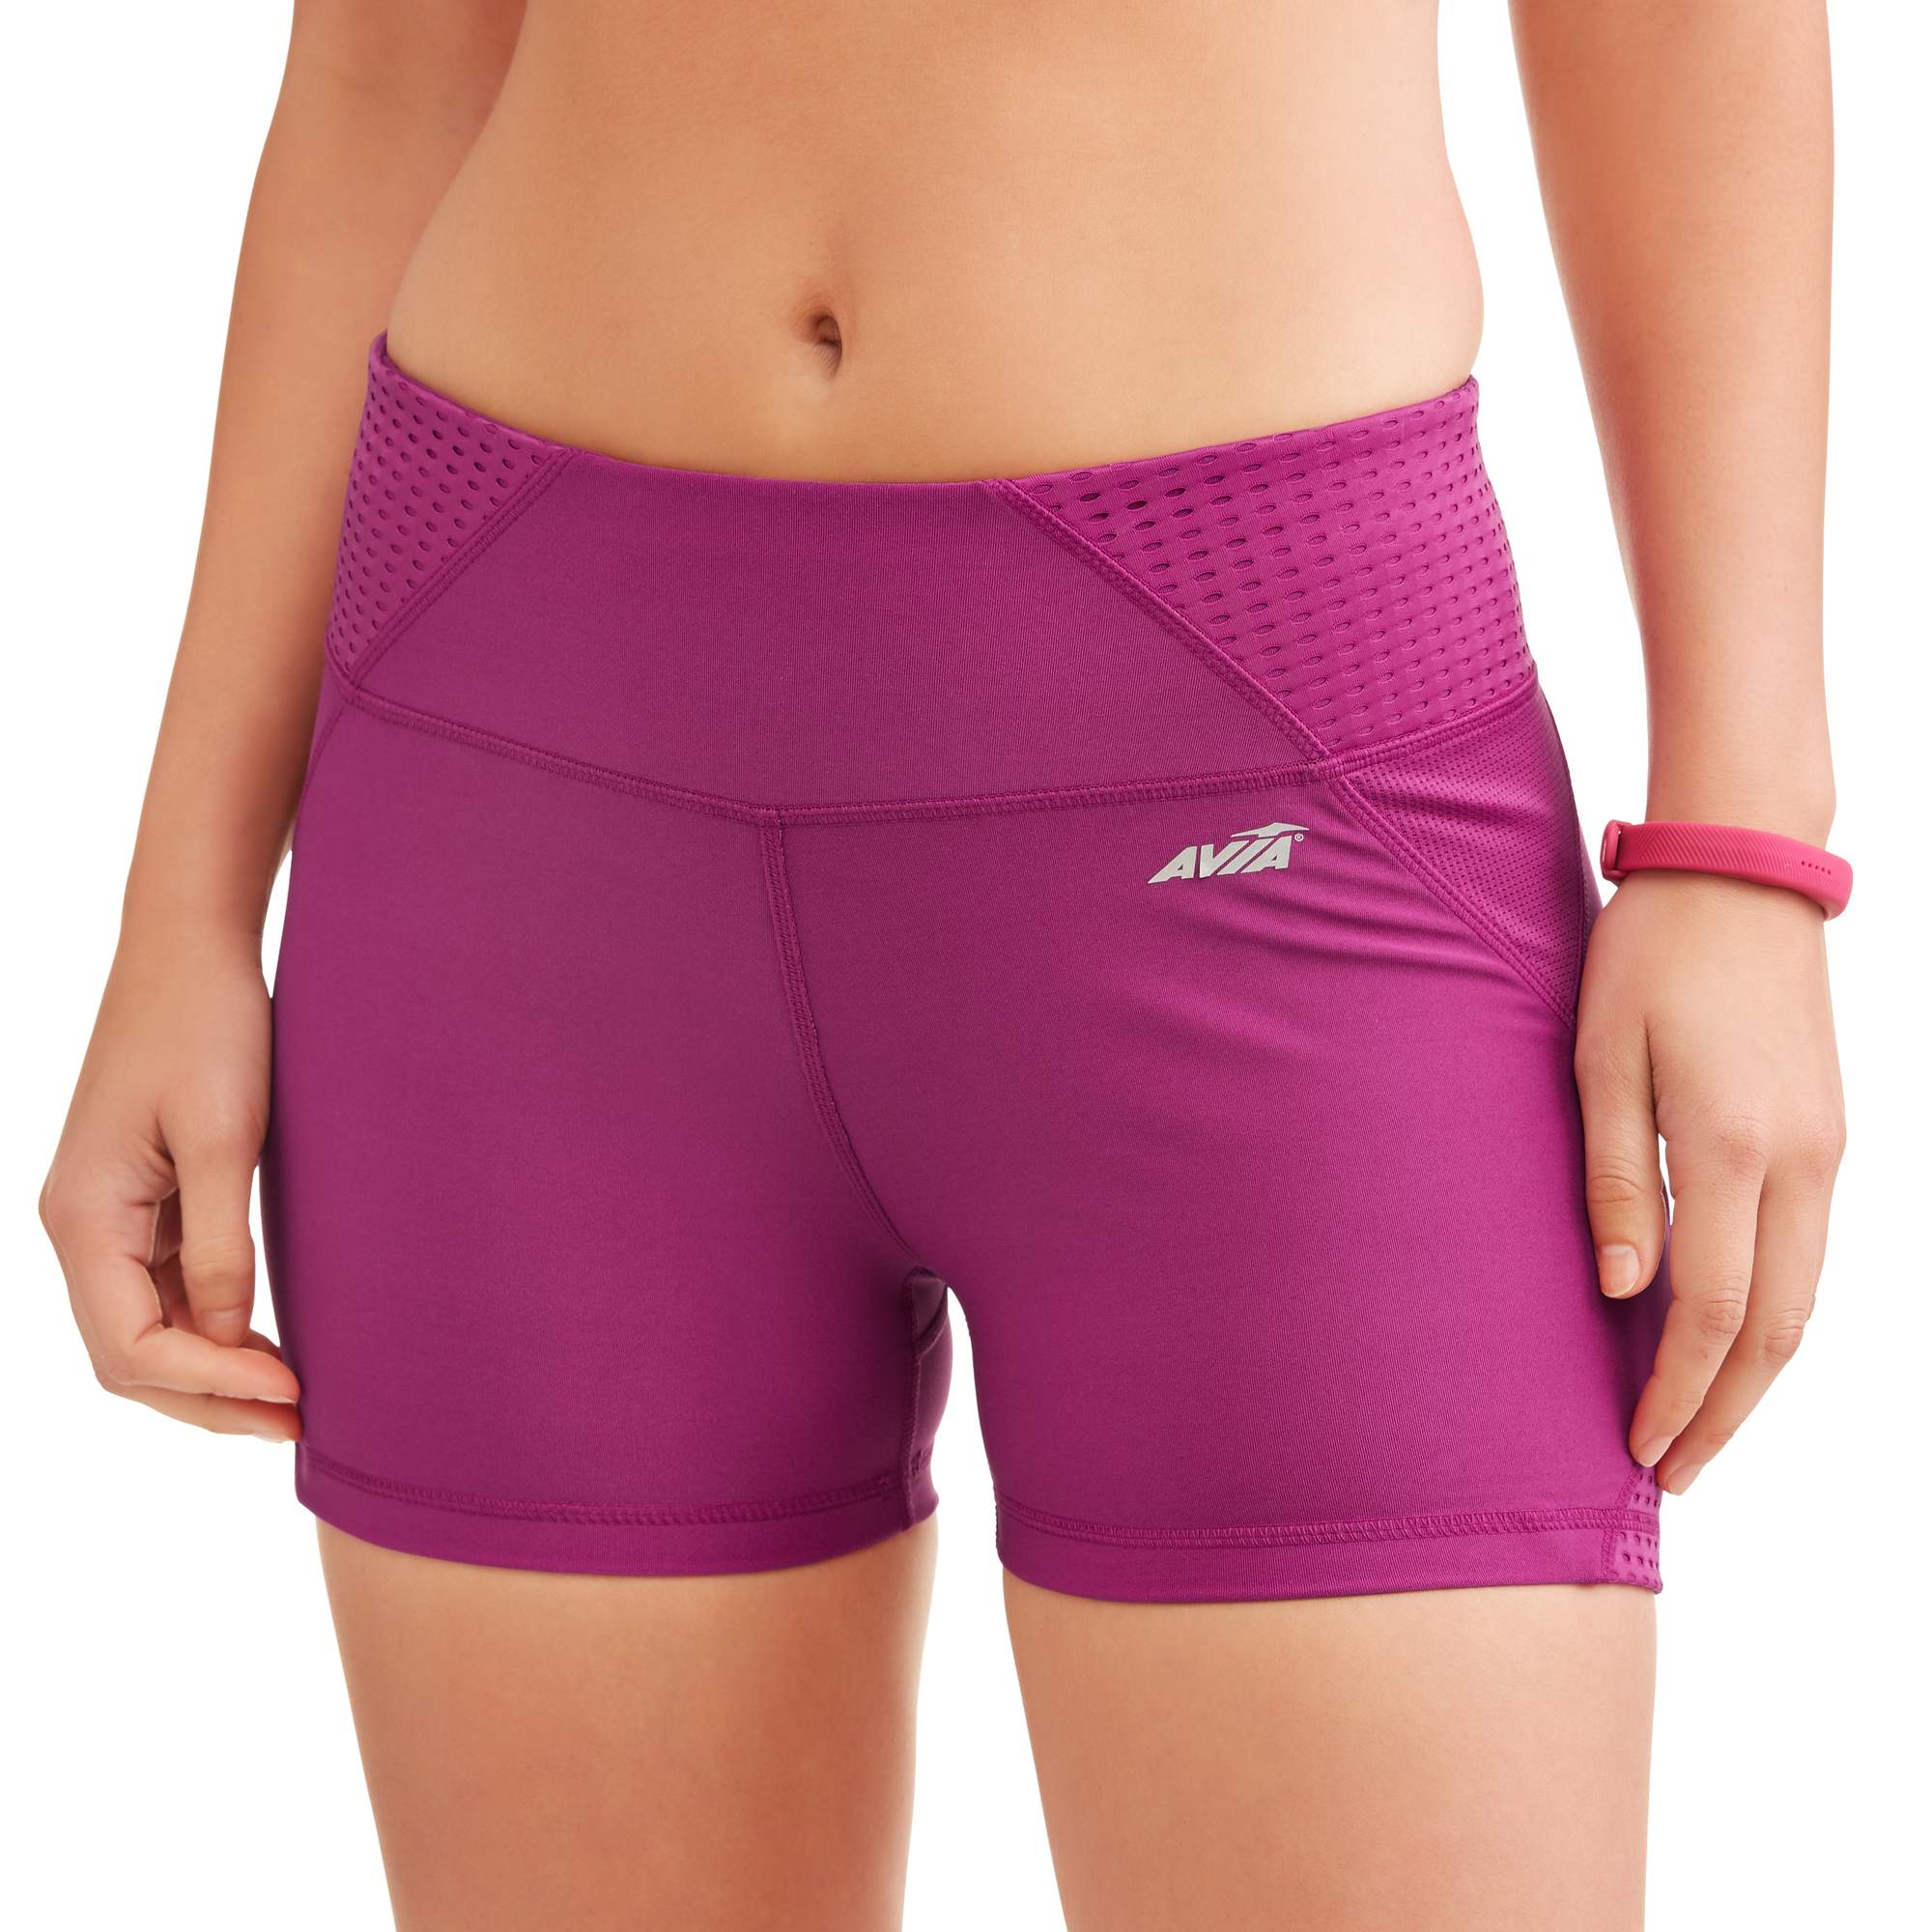 Women's Active 3 Bike Short With Mesh Inserts